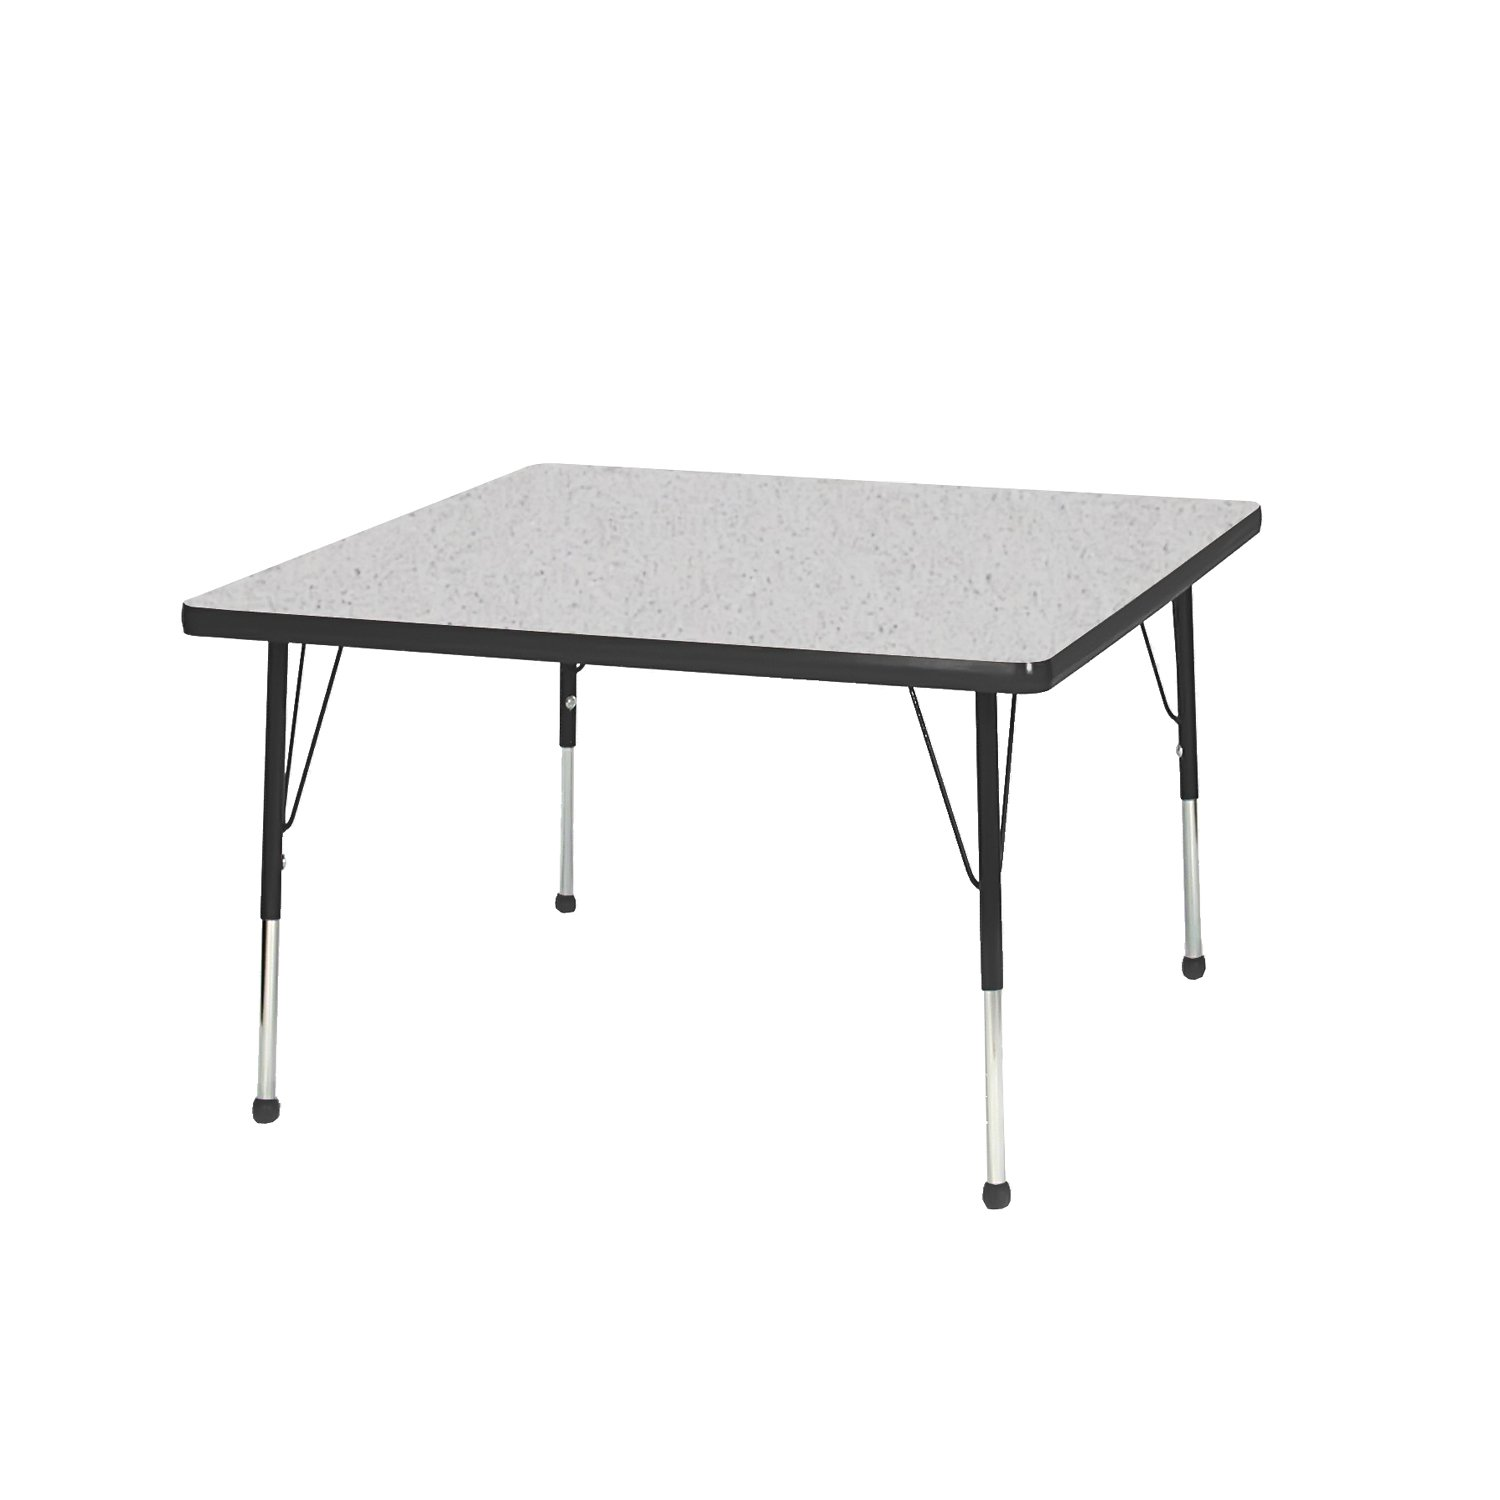 Creative Colors N36SQBL-SB Activity Table, Ball Glides, Standard Height, 36'', Square, Gray Nebula Top, Blue Edge by Creative Colors